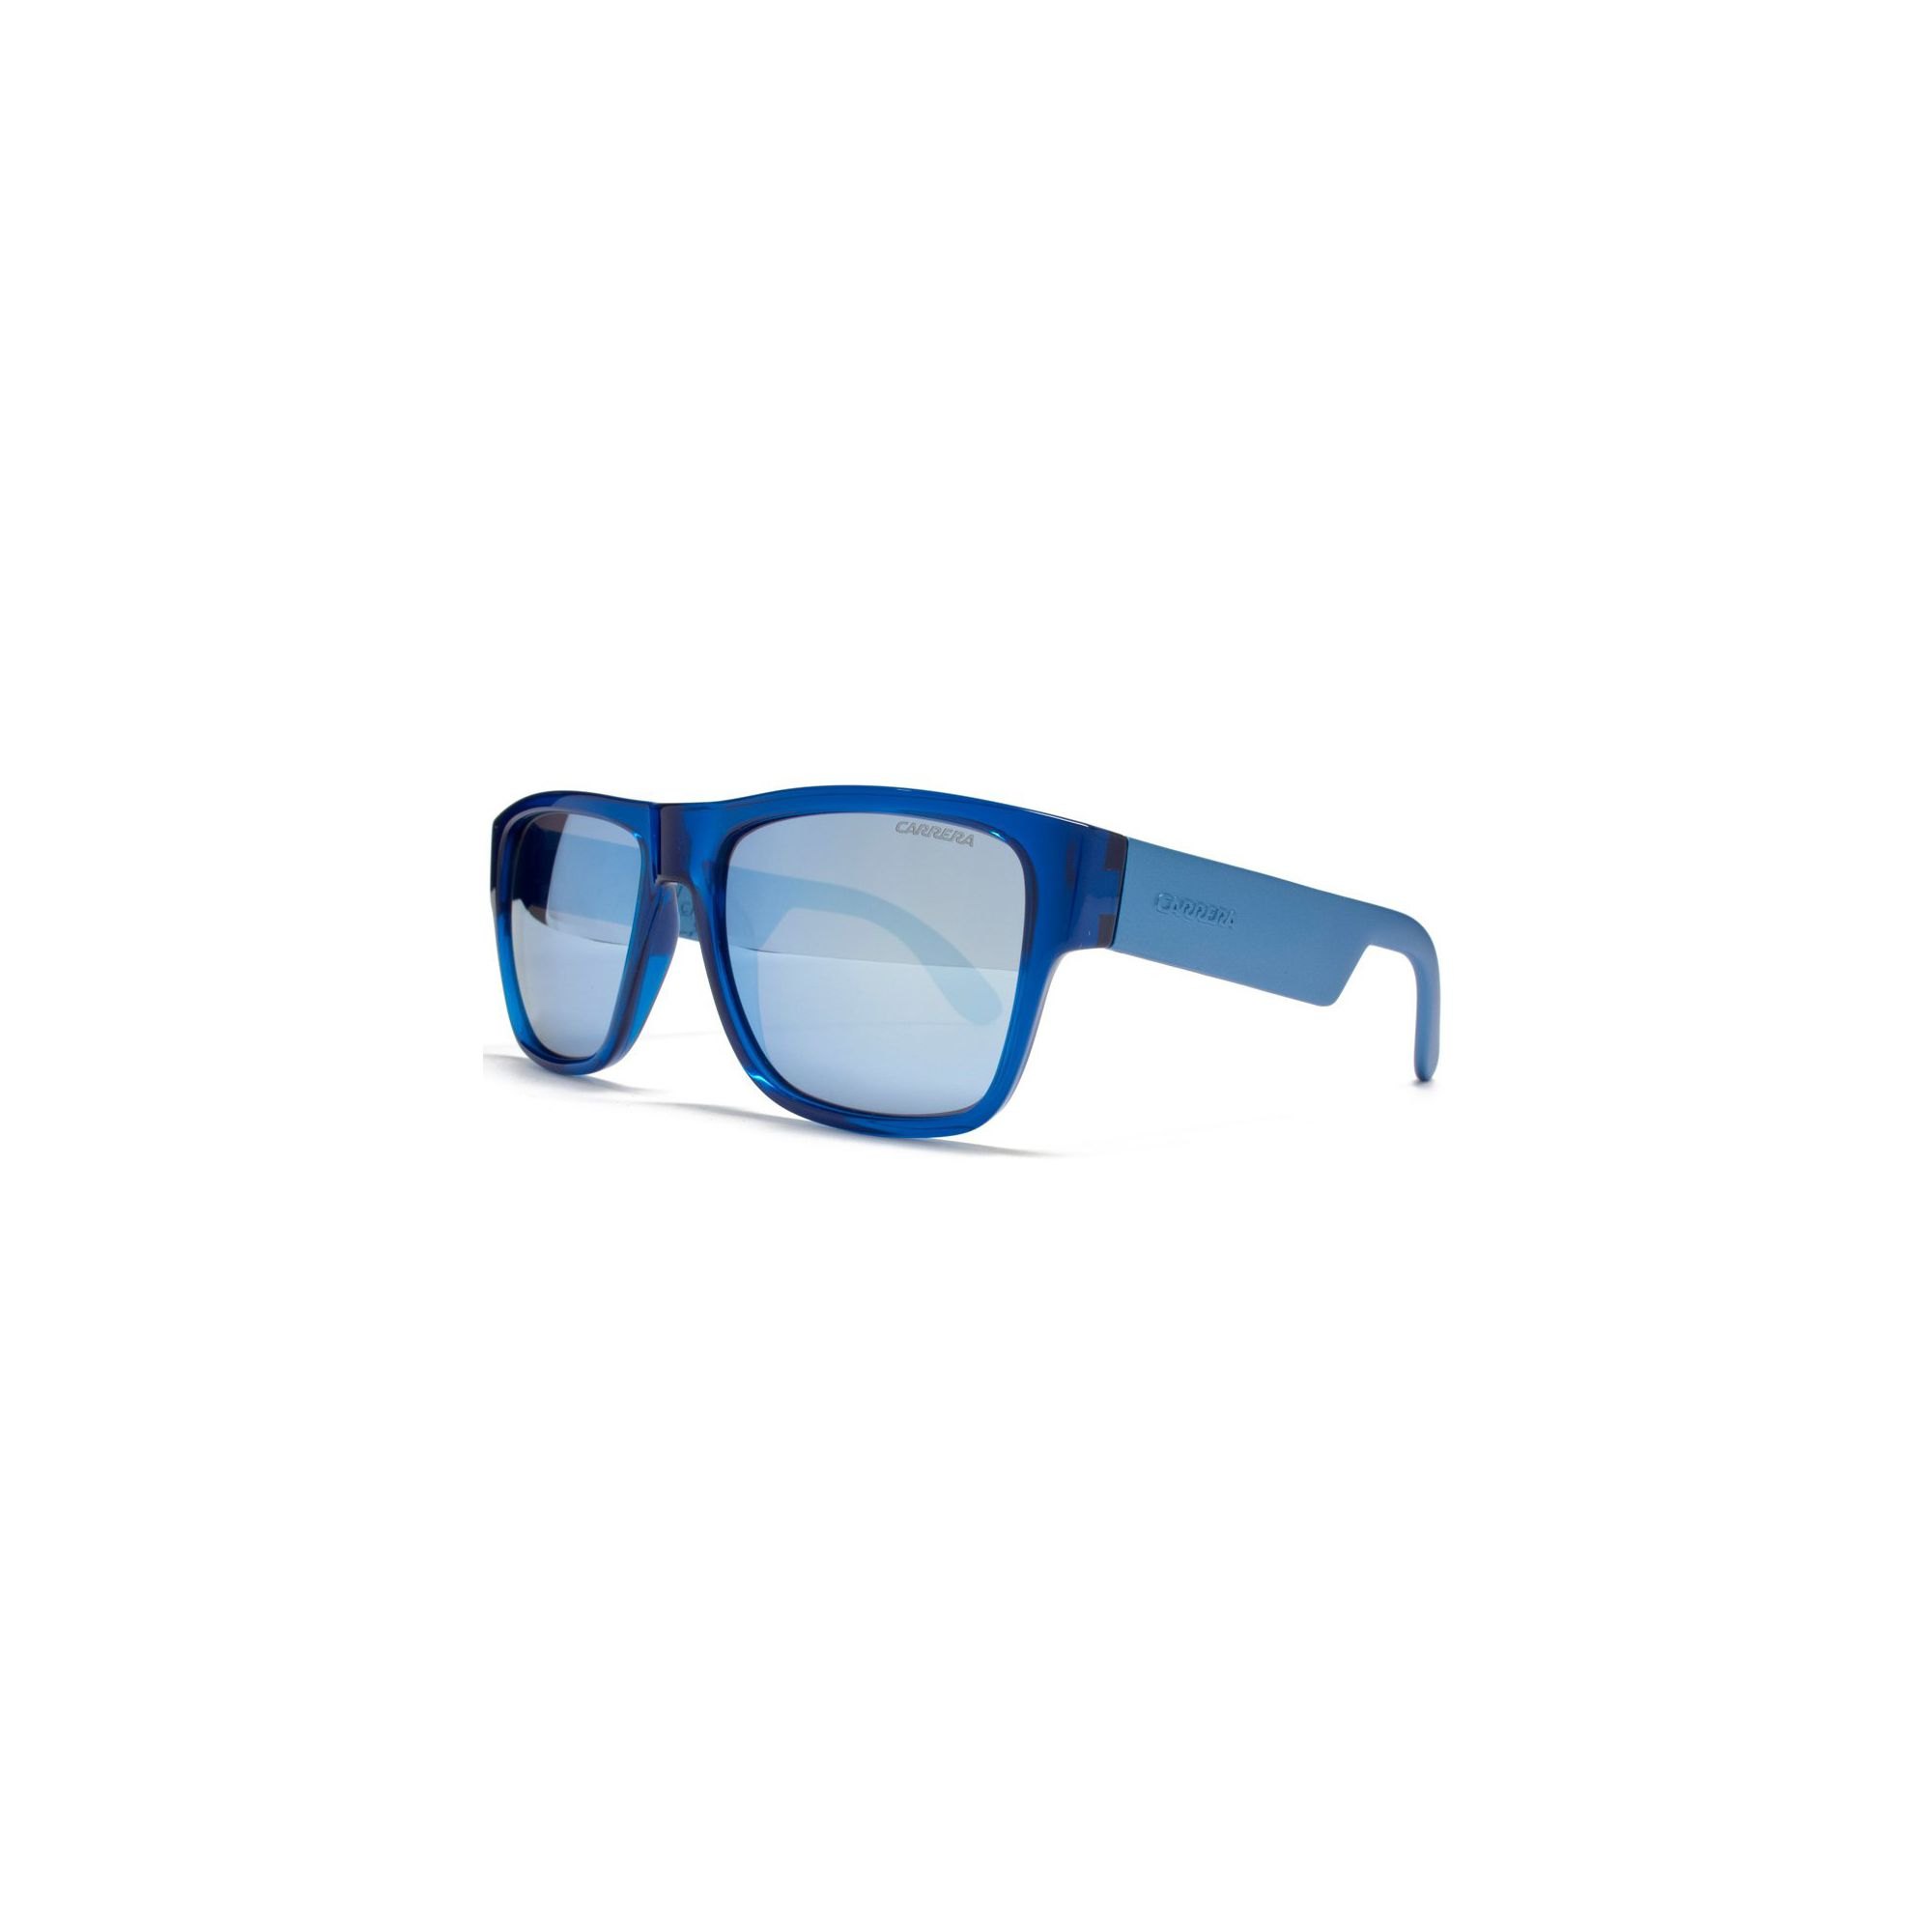 Rimless Glasses At Tesco : Myshop